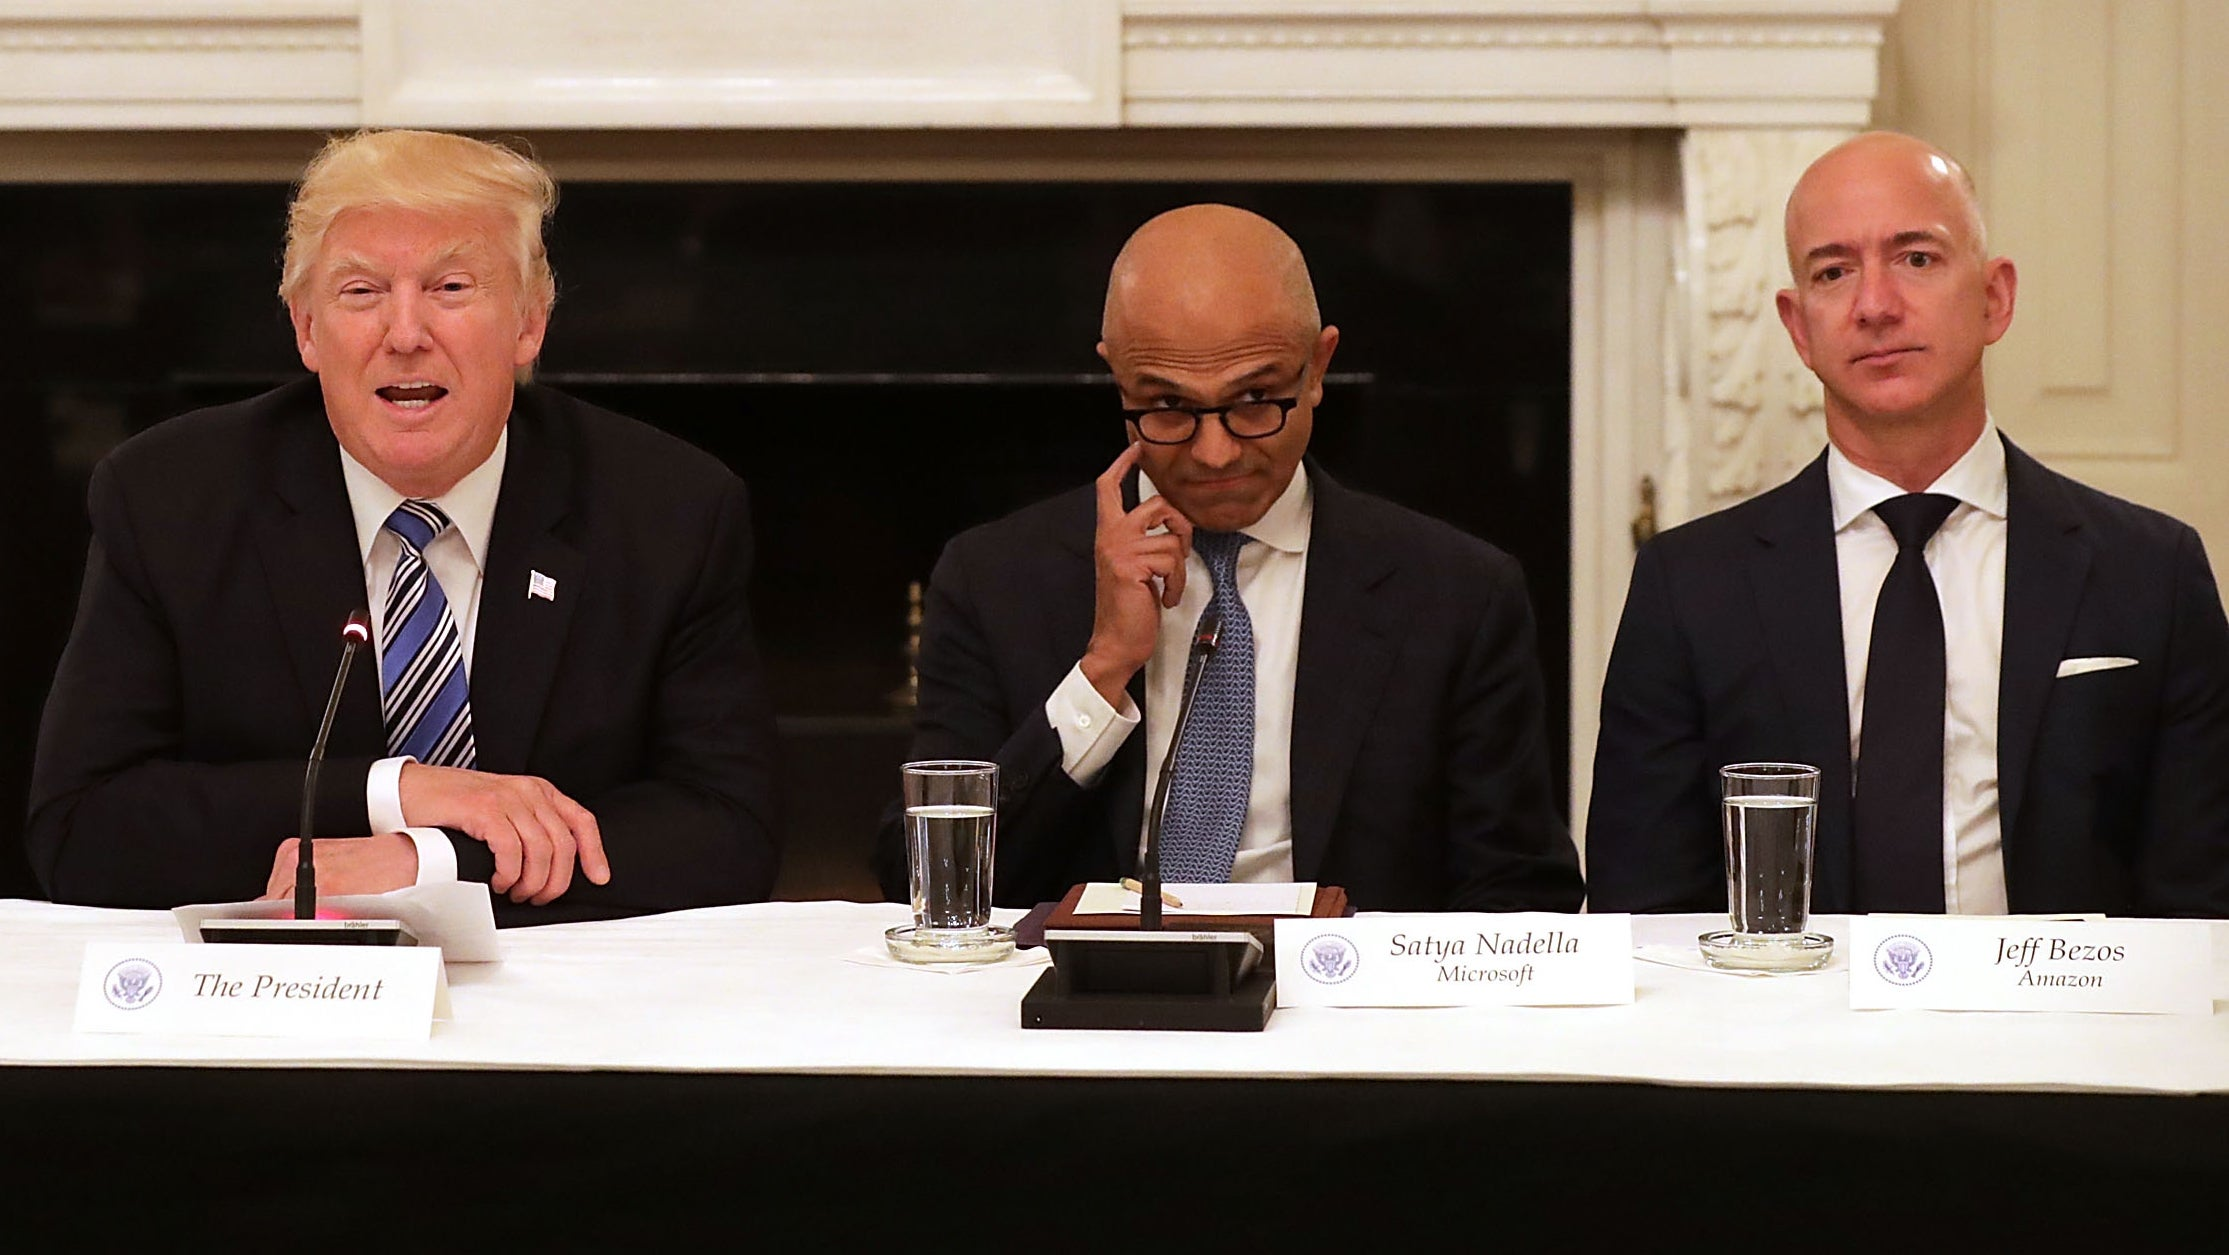 Amazon Lost $US53 Billion In One Day Because Trump Has Opinions